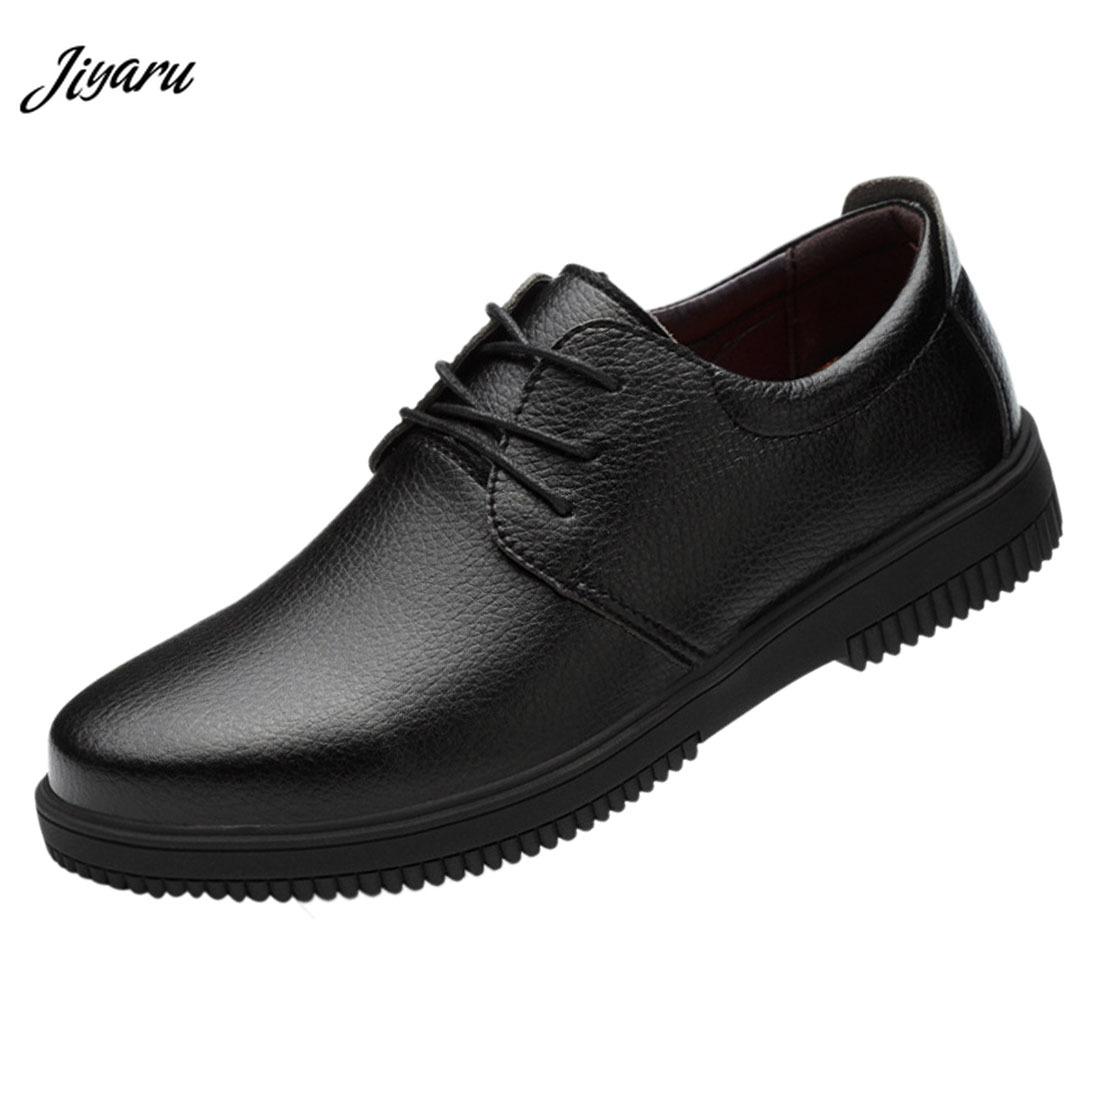 Kitchen Work Shoes: 2019 New Arrival Kitchen Work Shoes For Chef Men